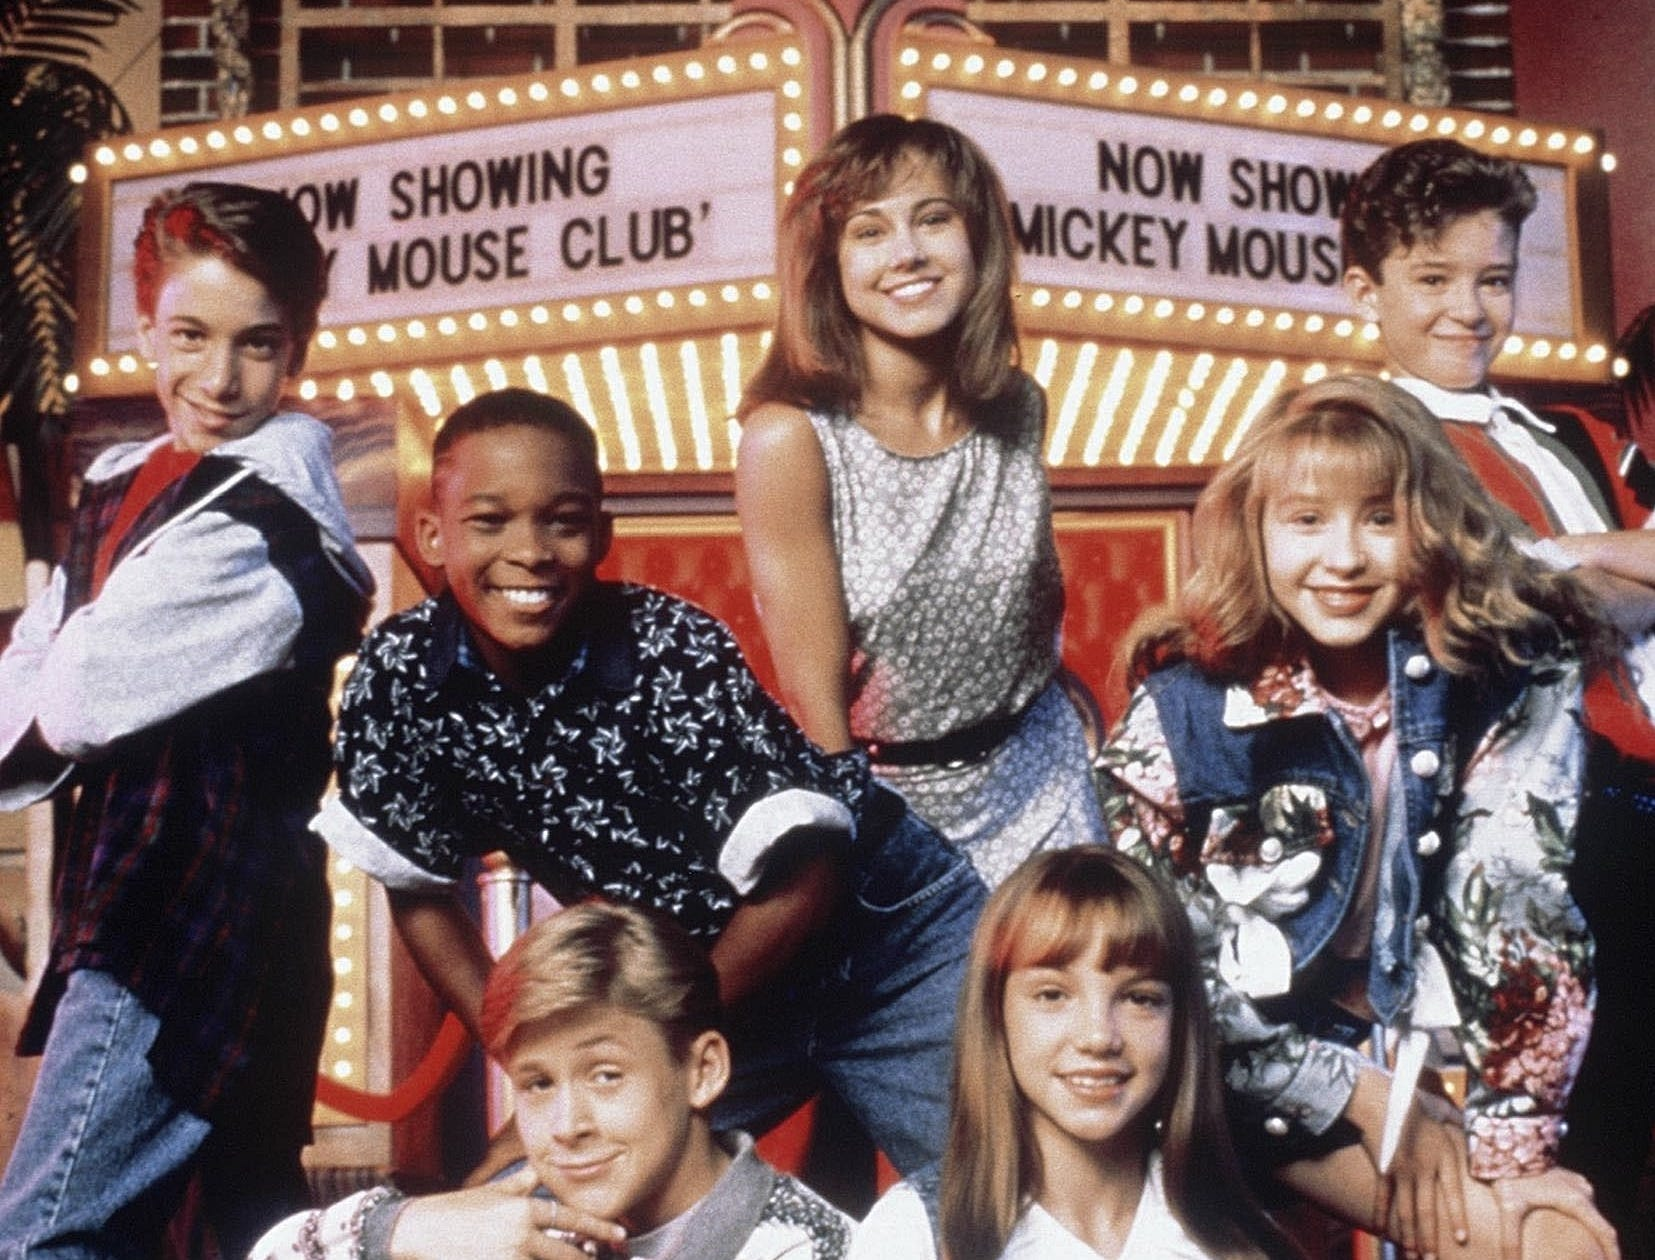 The club: Ryan Gosling (front left), Britney Spears (front right), Christina Aguilera (2nd row, right) and Justin Timberlake (of 'N Sync, 3rd row, right)